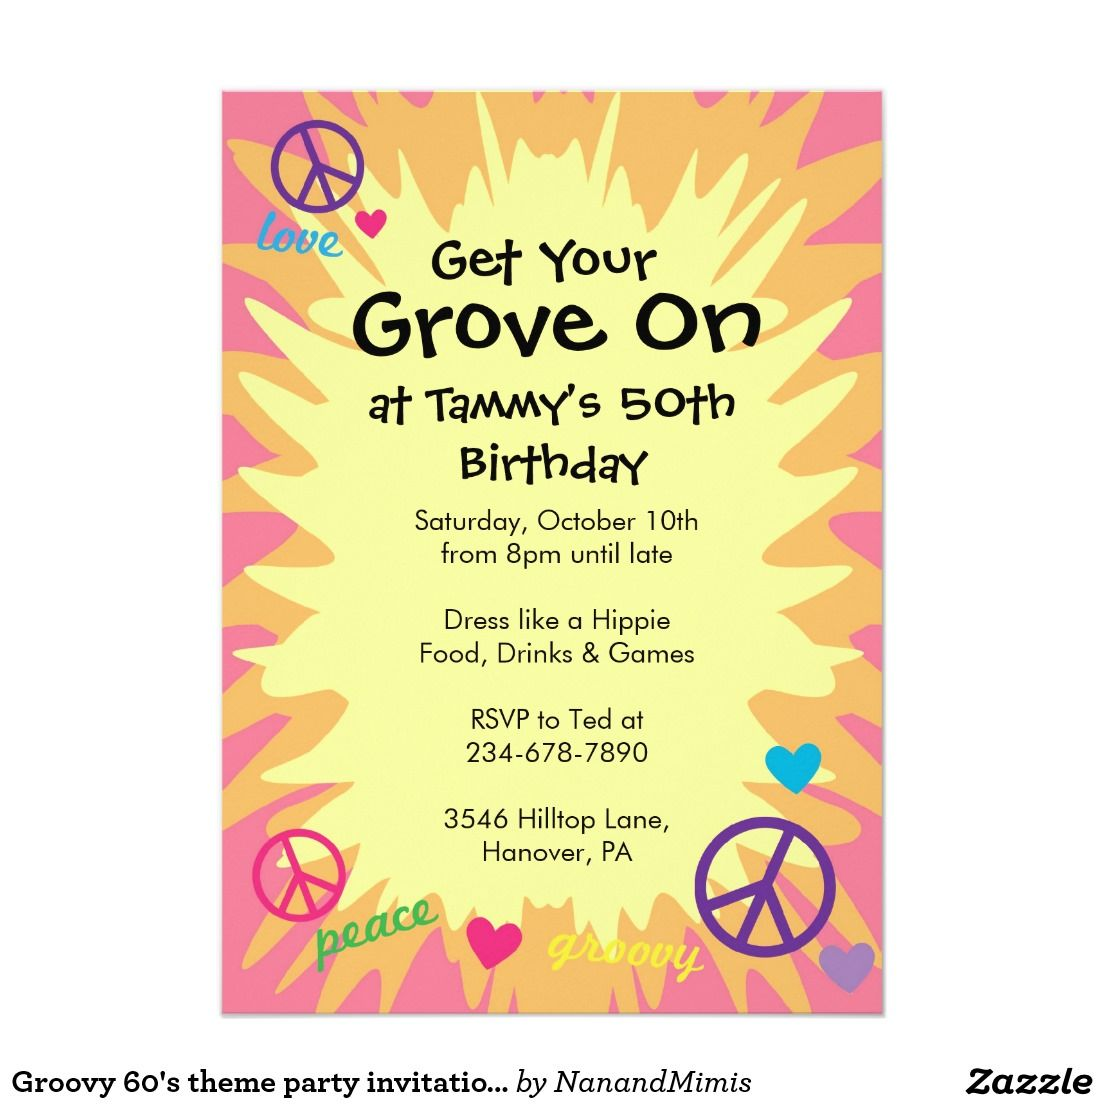 Groovy 60\'s theme party invitations | Party invitations, Hippie ...